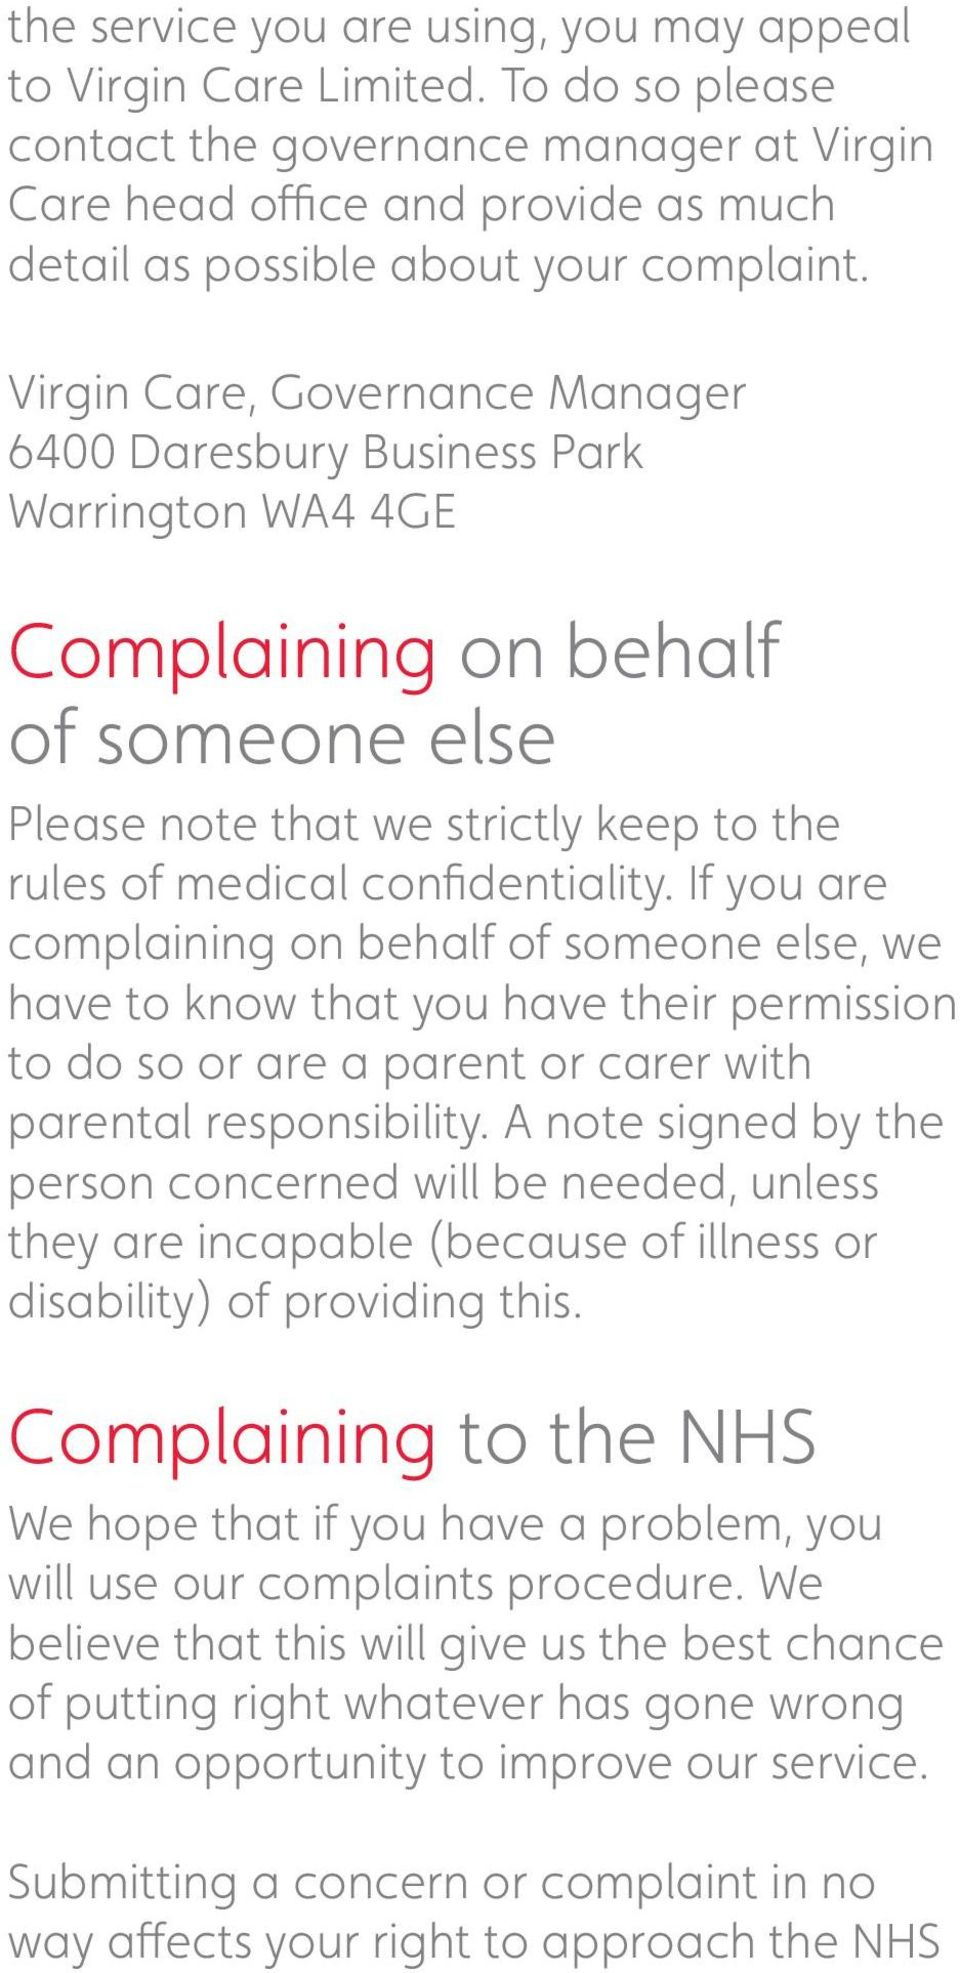 If you are complaining on behalf of someone else, we have to know that you have their permission to do so or are a parent or carer with parental responsibility.